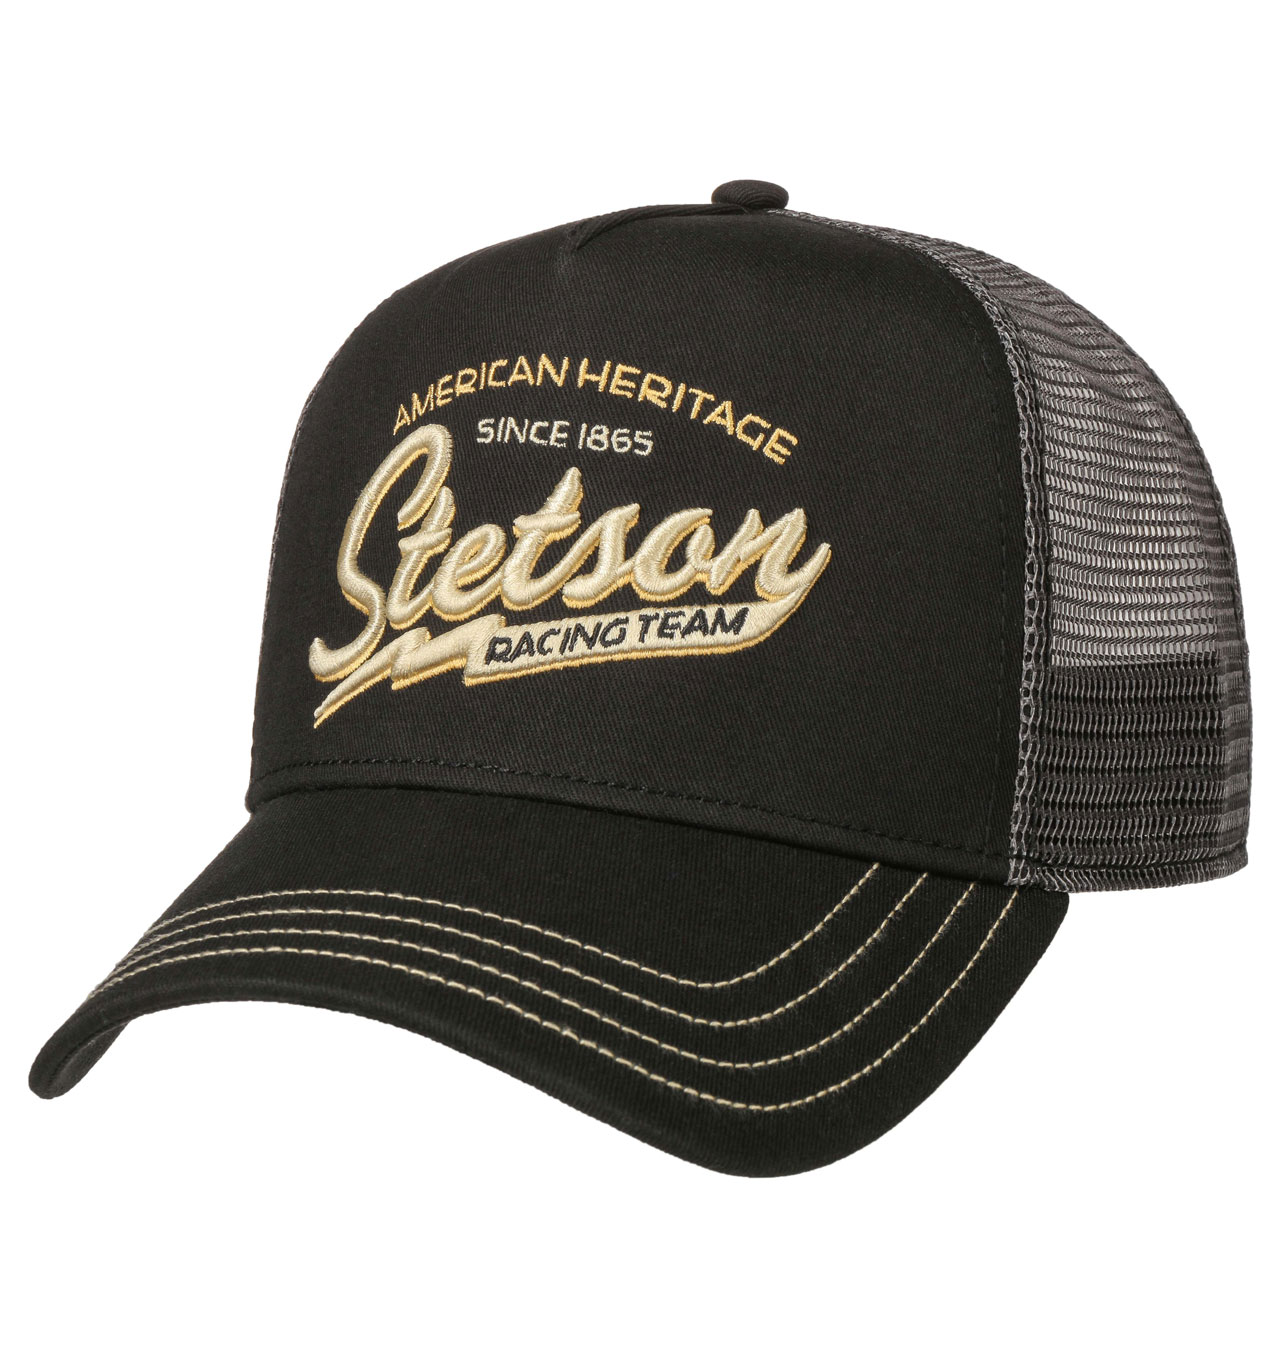 Stetson - Racing Team Trucker Cap - Black